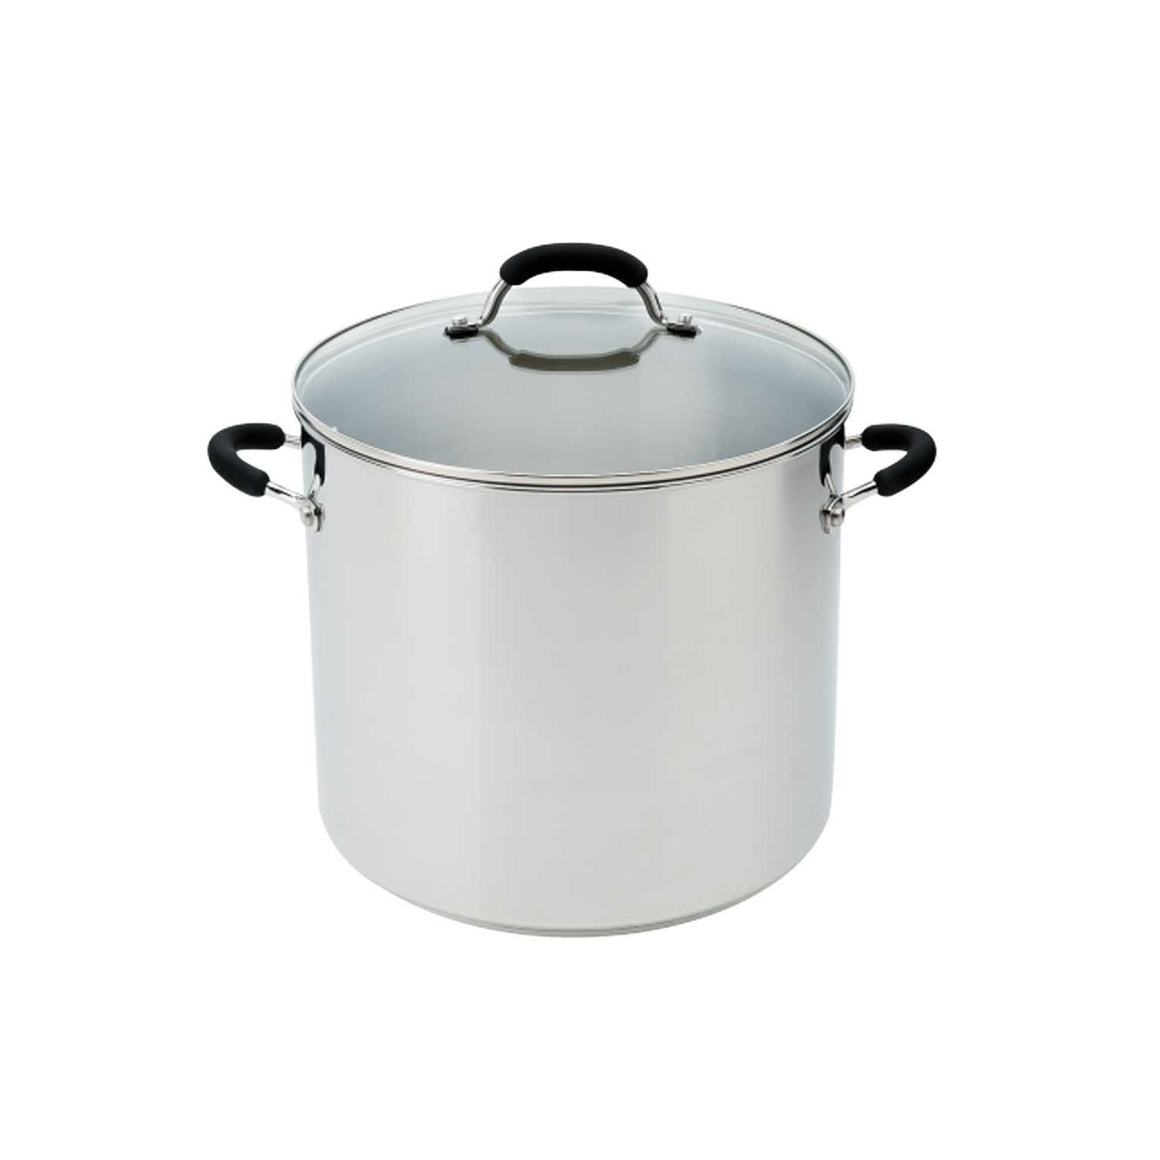 Raco Contemporary Stainless Steel Stockpot 30cm/15.1L - stuff-n-things